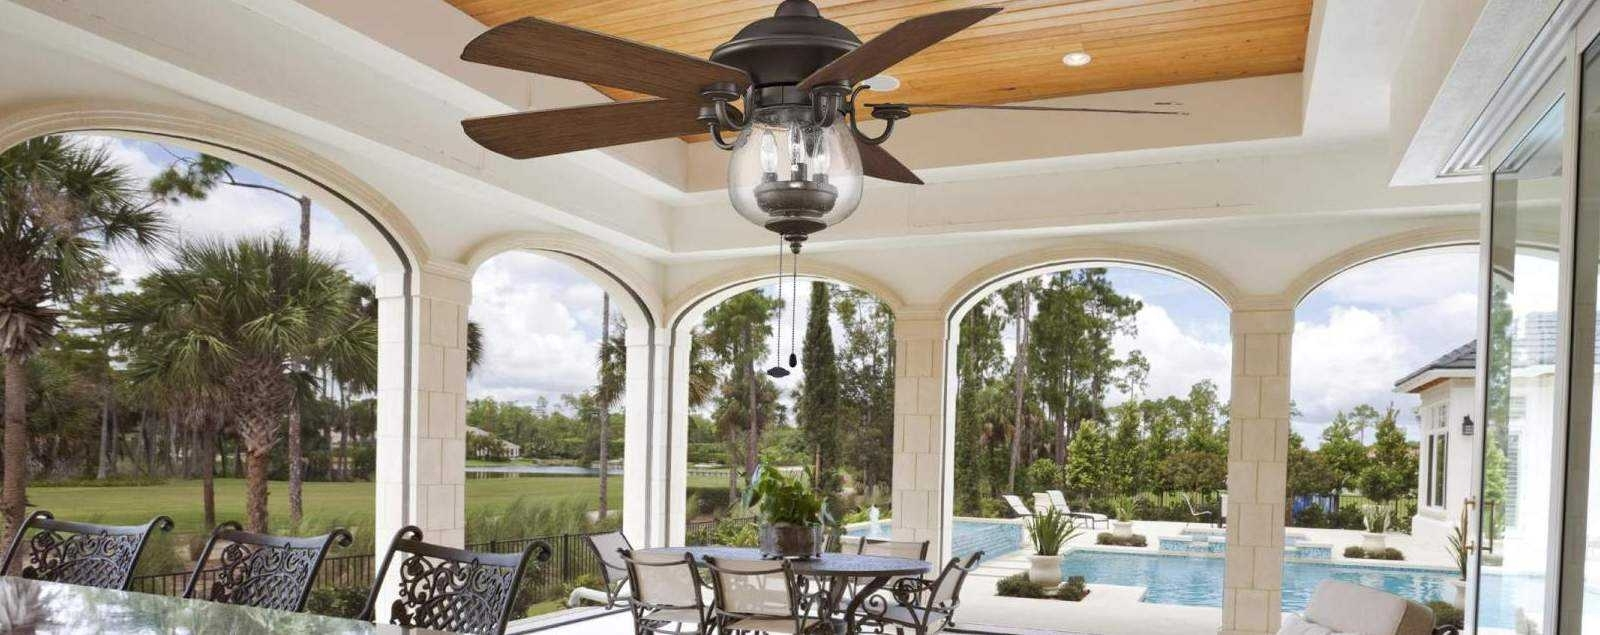 Outdoor Ceiling Fans For Porches For Latest Outdoor Ceiling Fans Hansen Ideas With Incredible Exterior For (View 4 of 20)